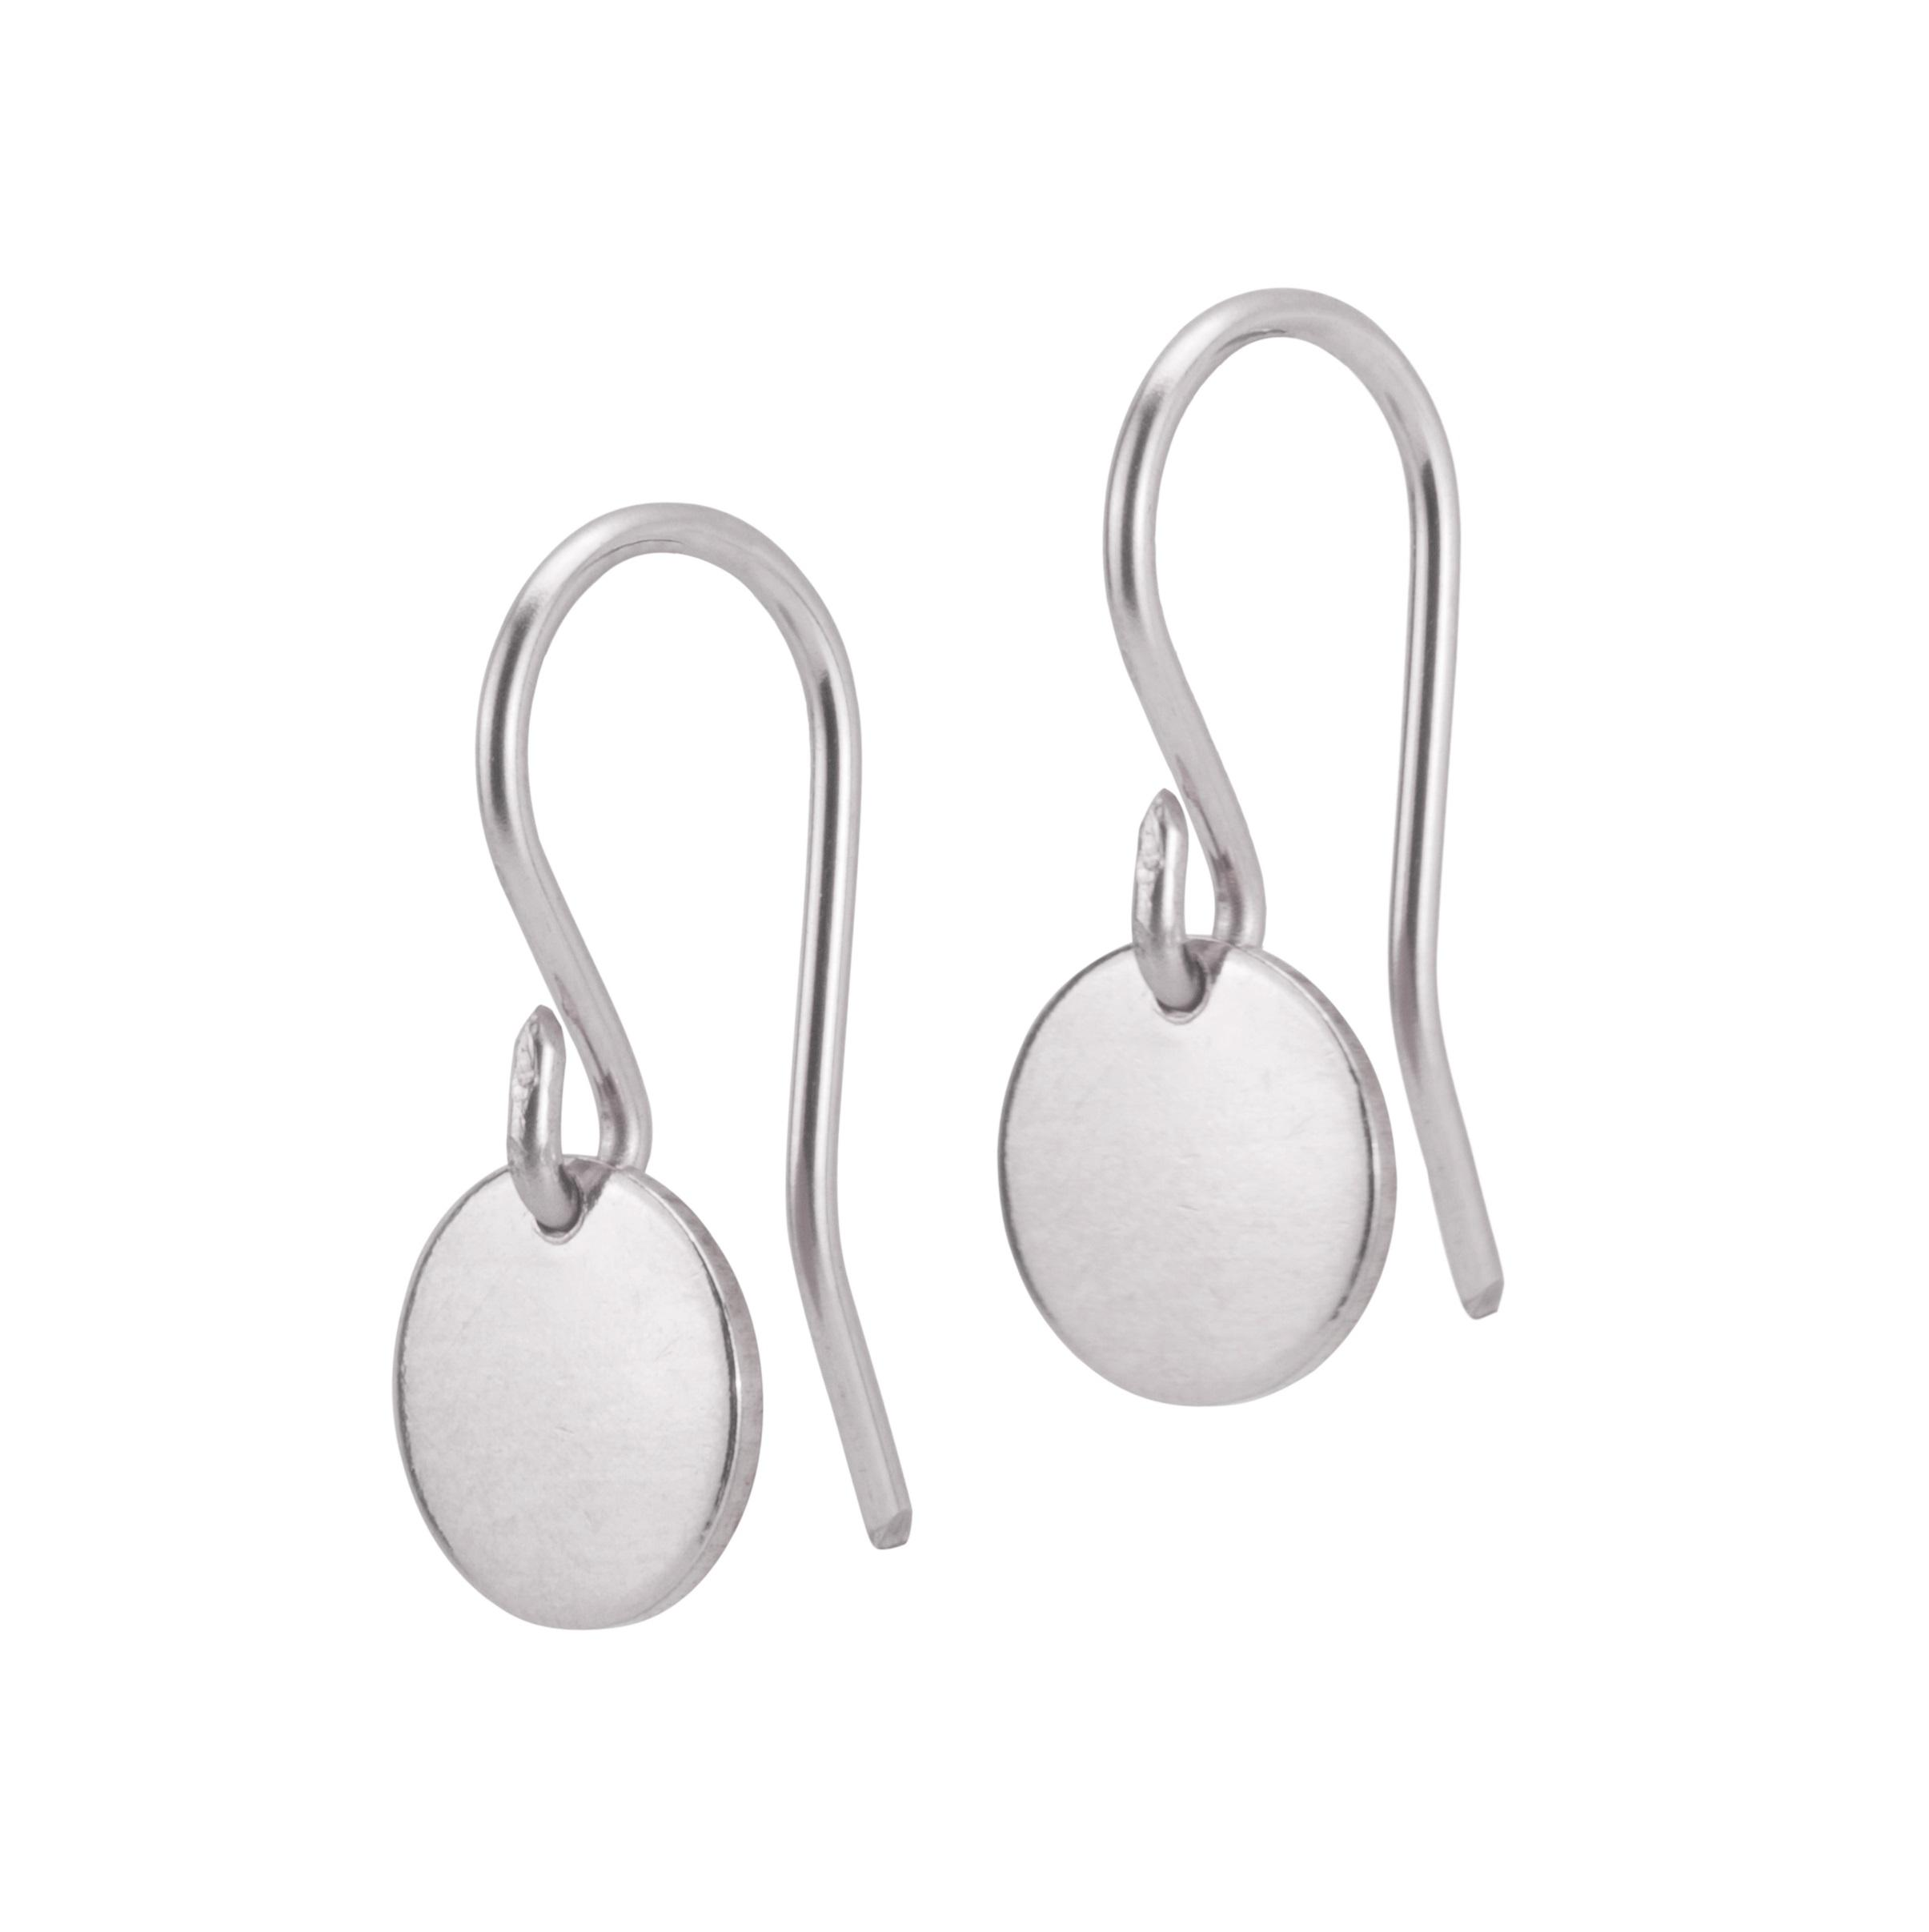 Steriling SIlver disc earrings for everyday wear